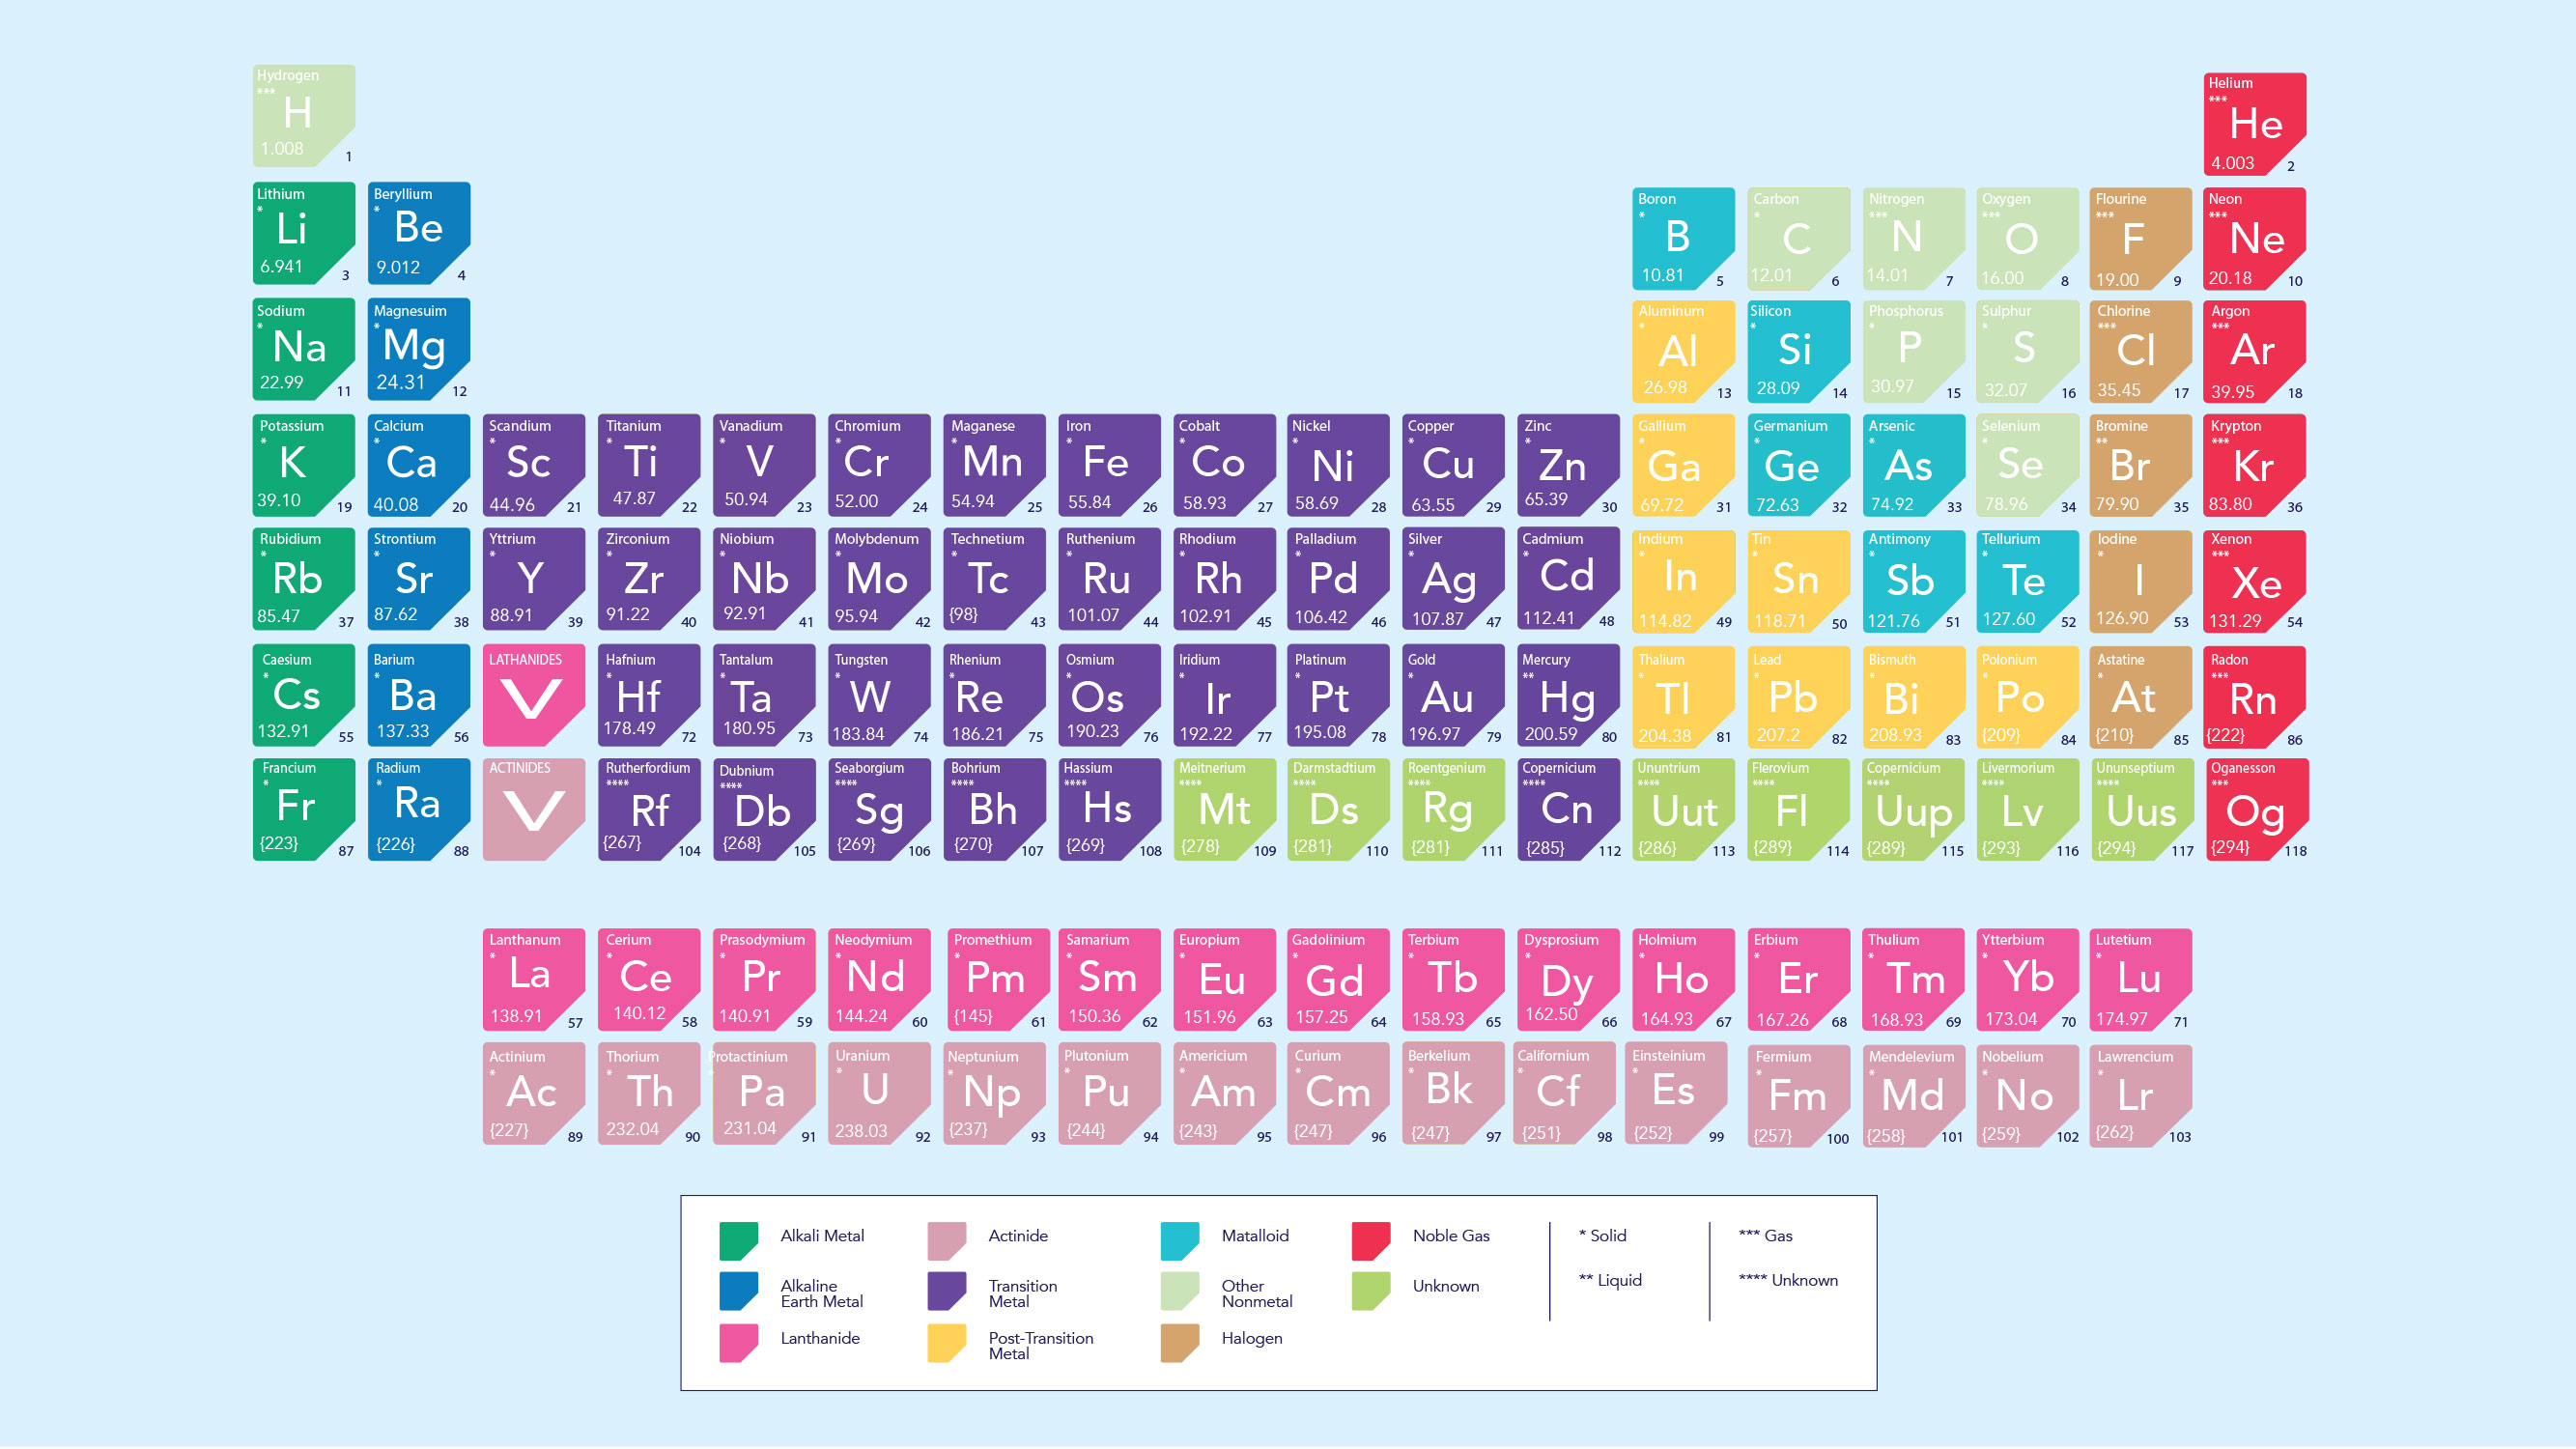 Cation Vs Anion Definition Chart And The Periodic Table